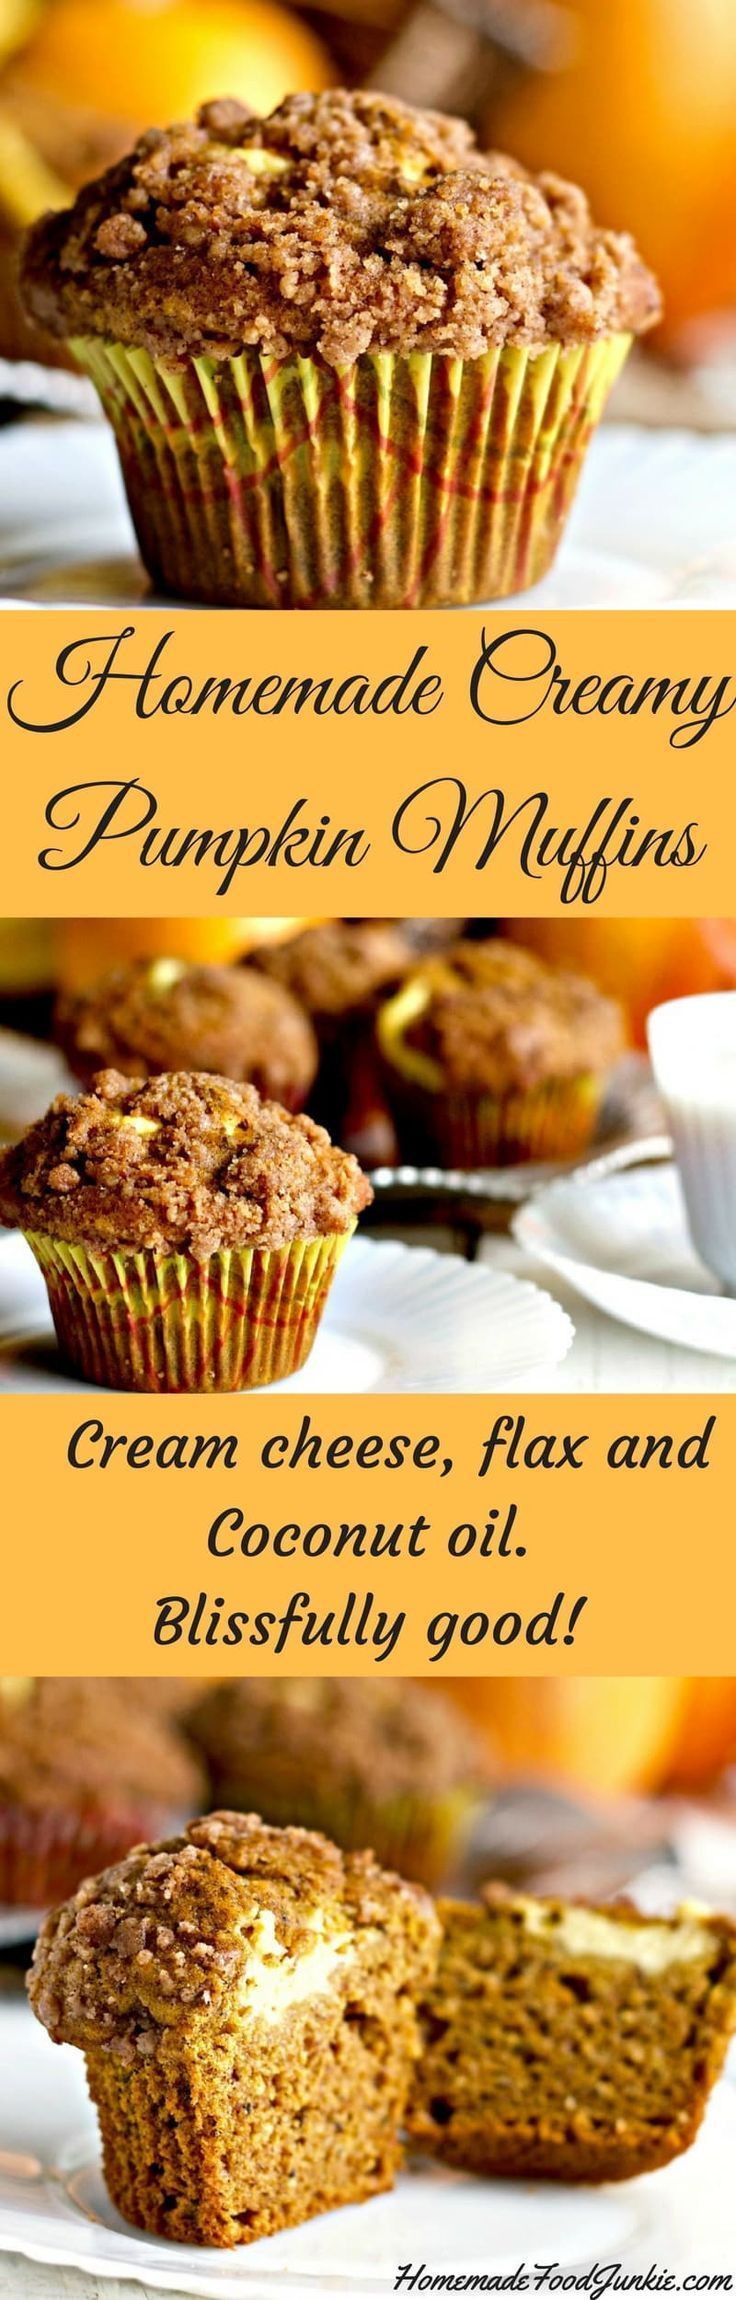 Homemade creamy Pumpkin Muffins with coconut oil and flax for a high fiber breakfast or snack.